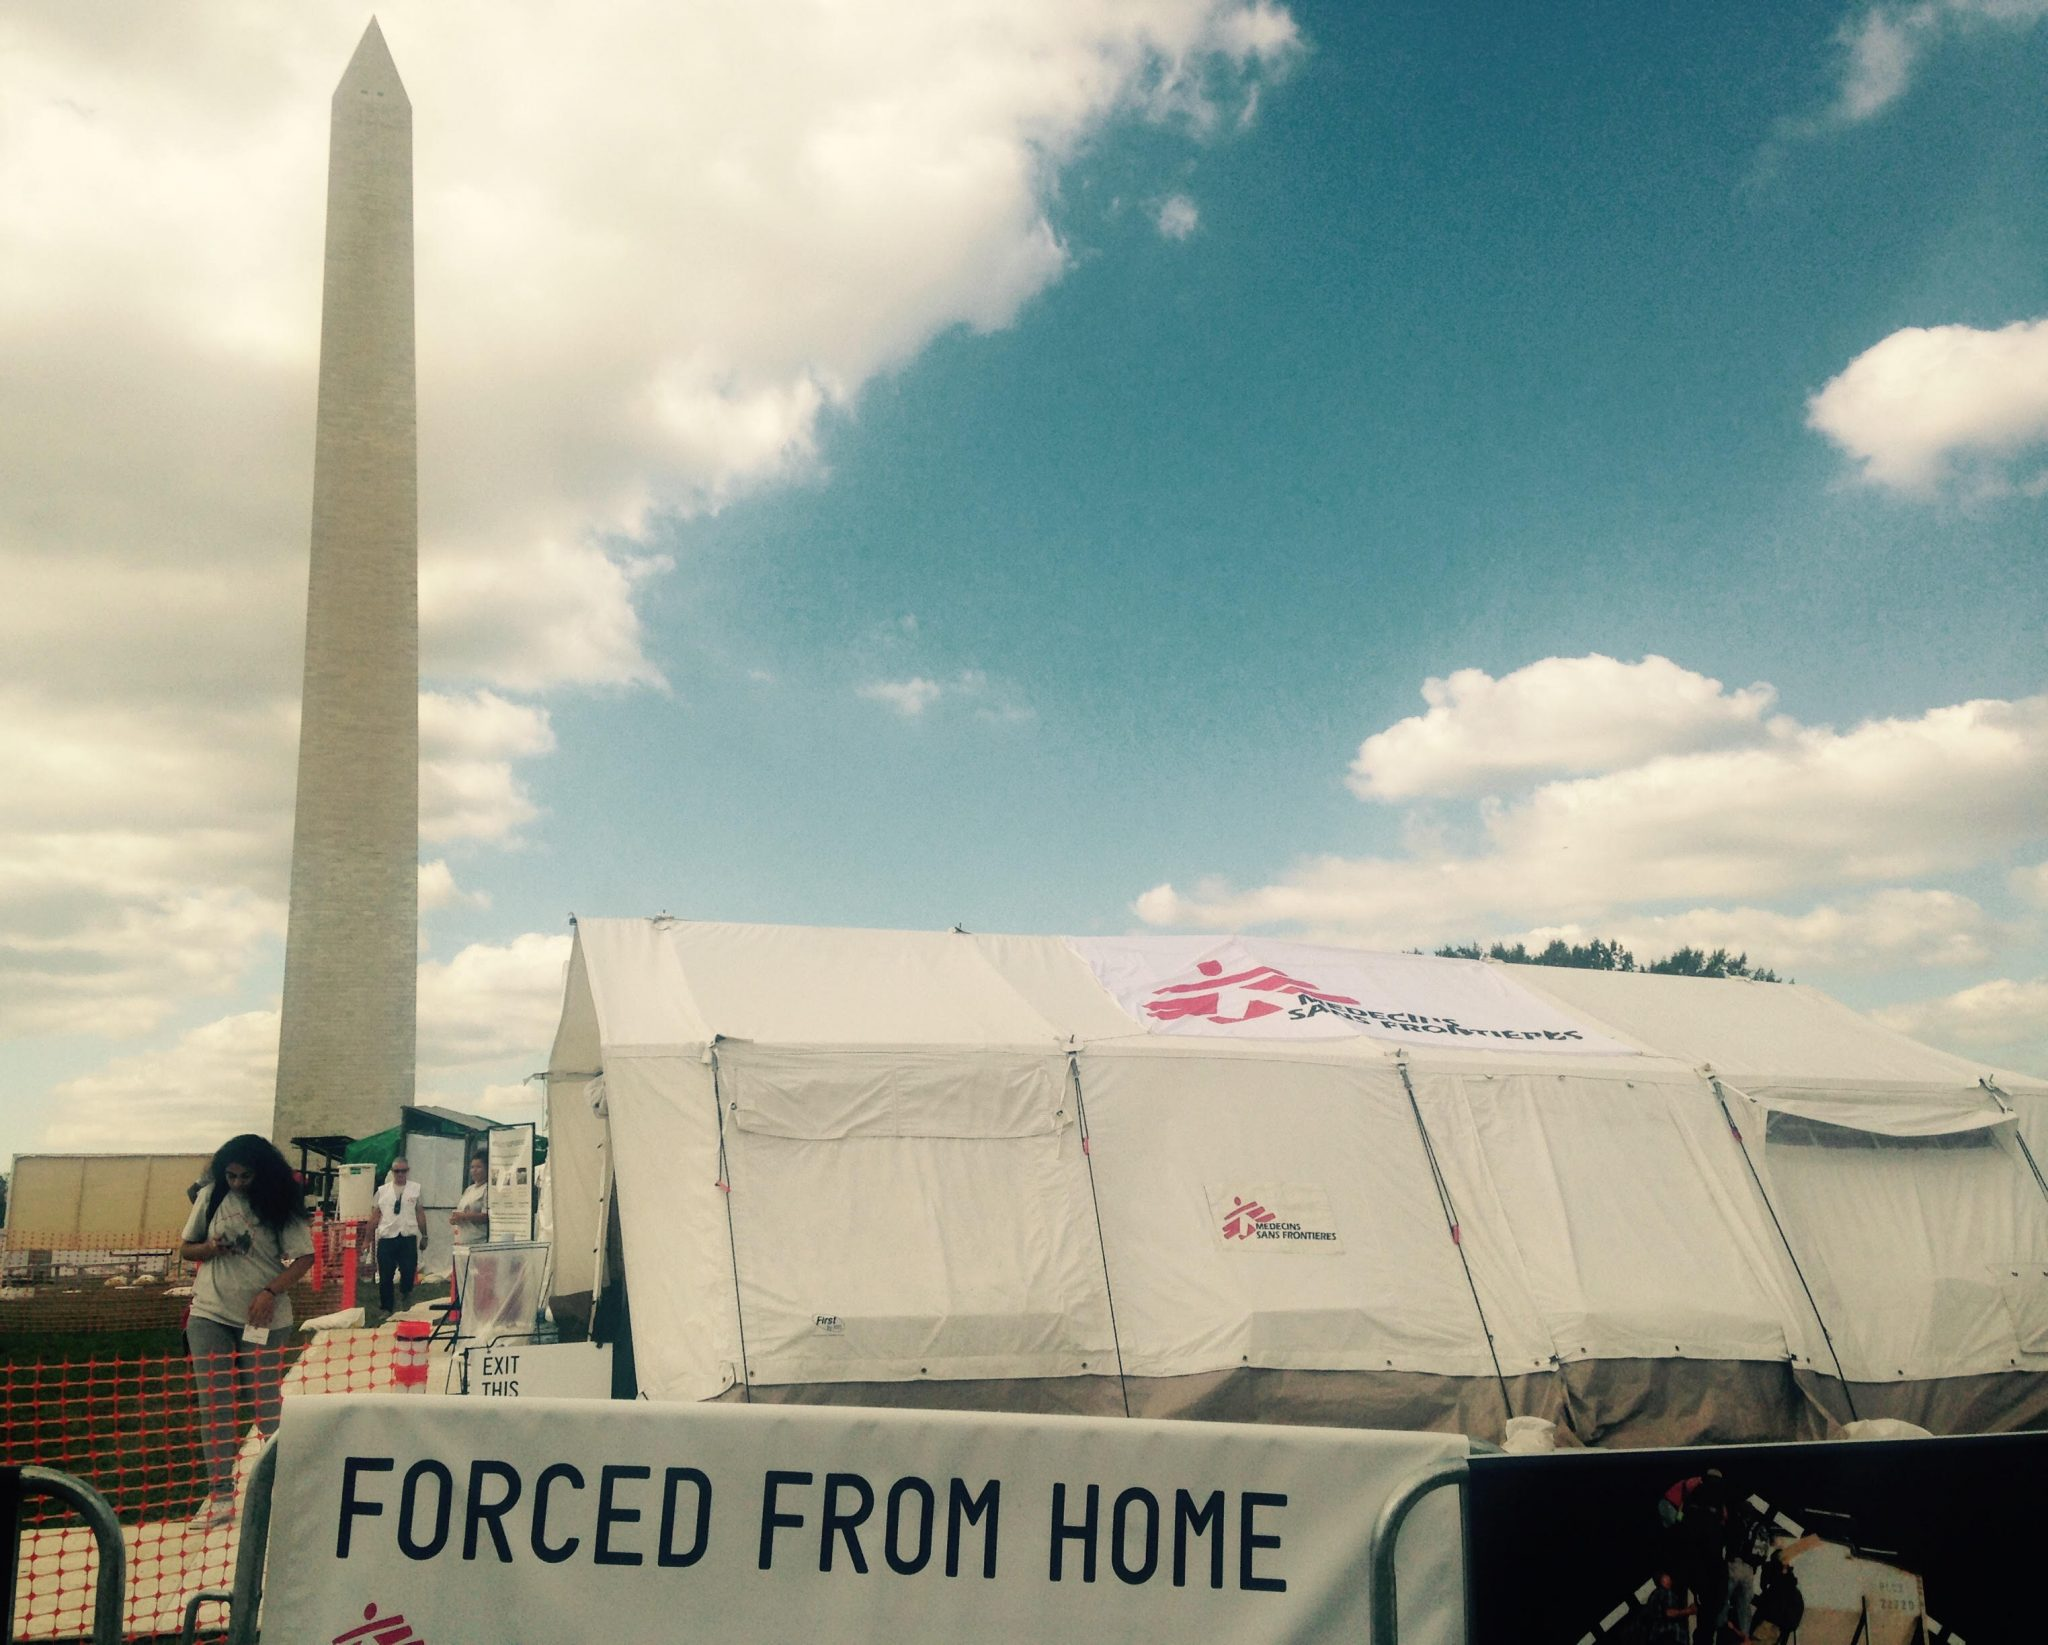 A miniature mock refugee camp has been set up to raise awareness about refugee issues. Photo: Hunger Notes